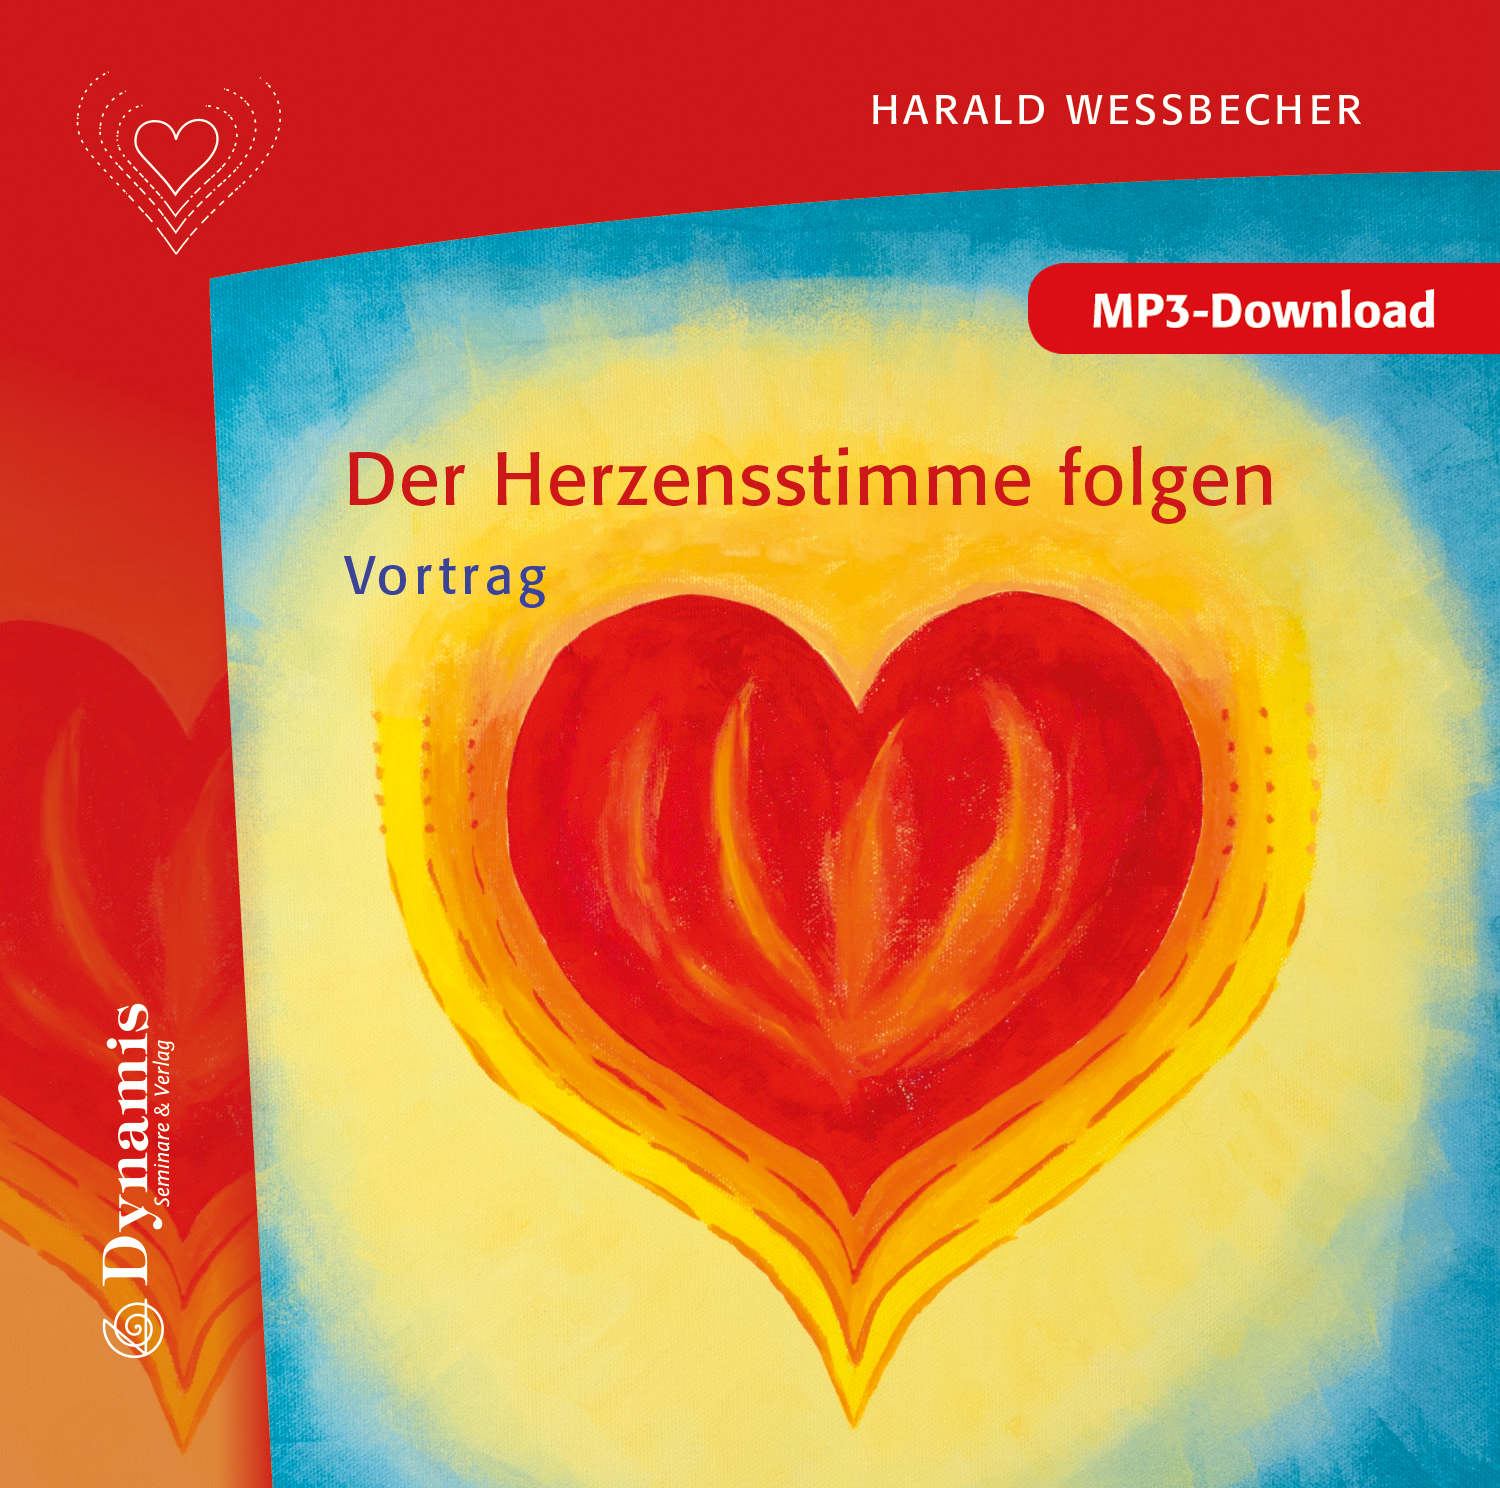 Der Herzensstimme folgen, MP3 (Download)